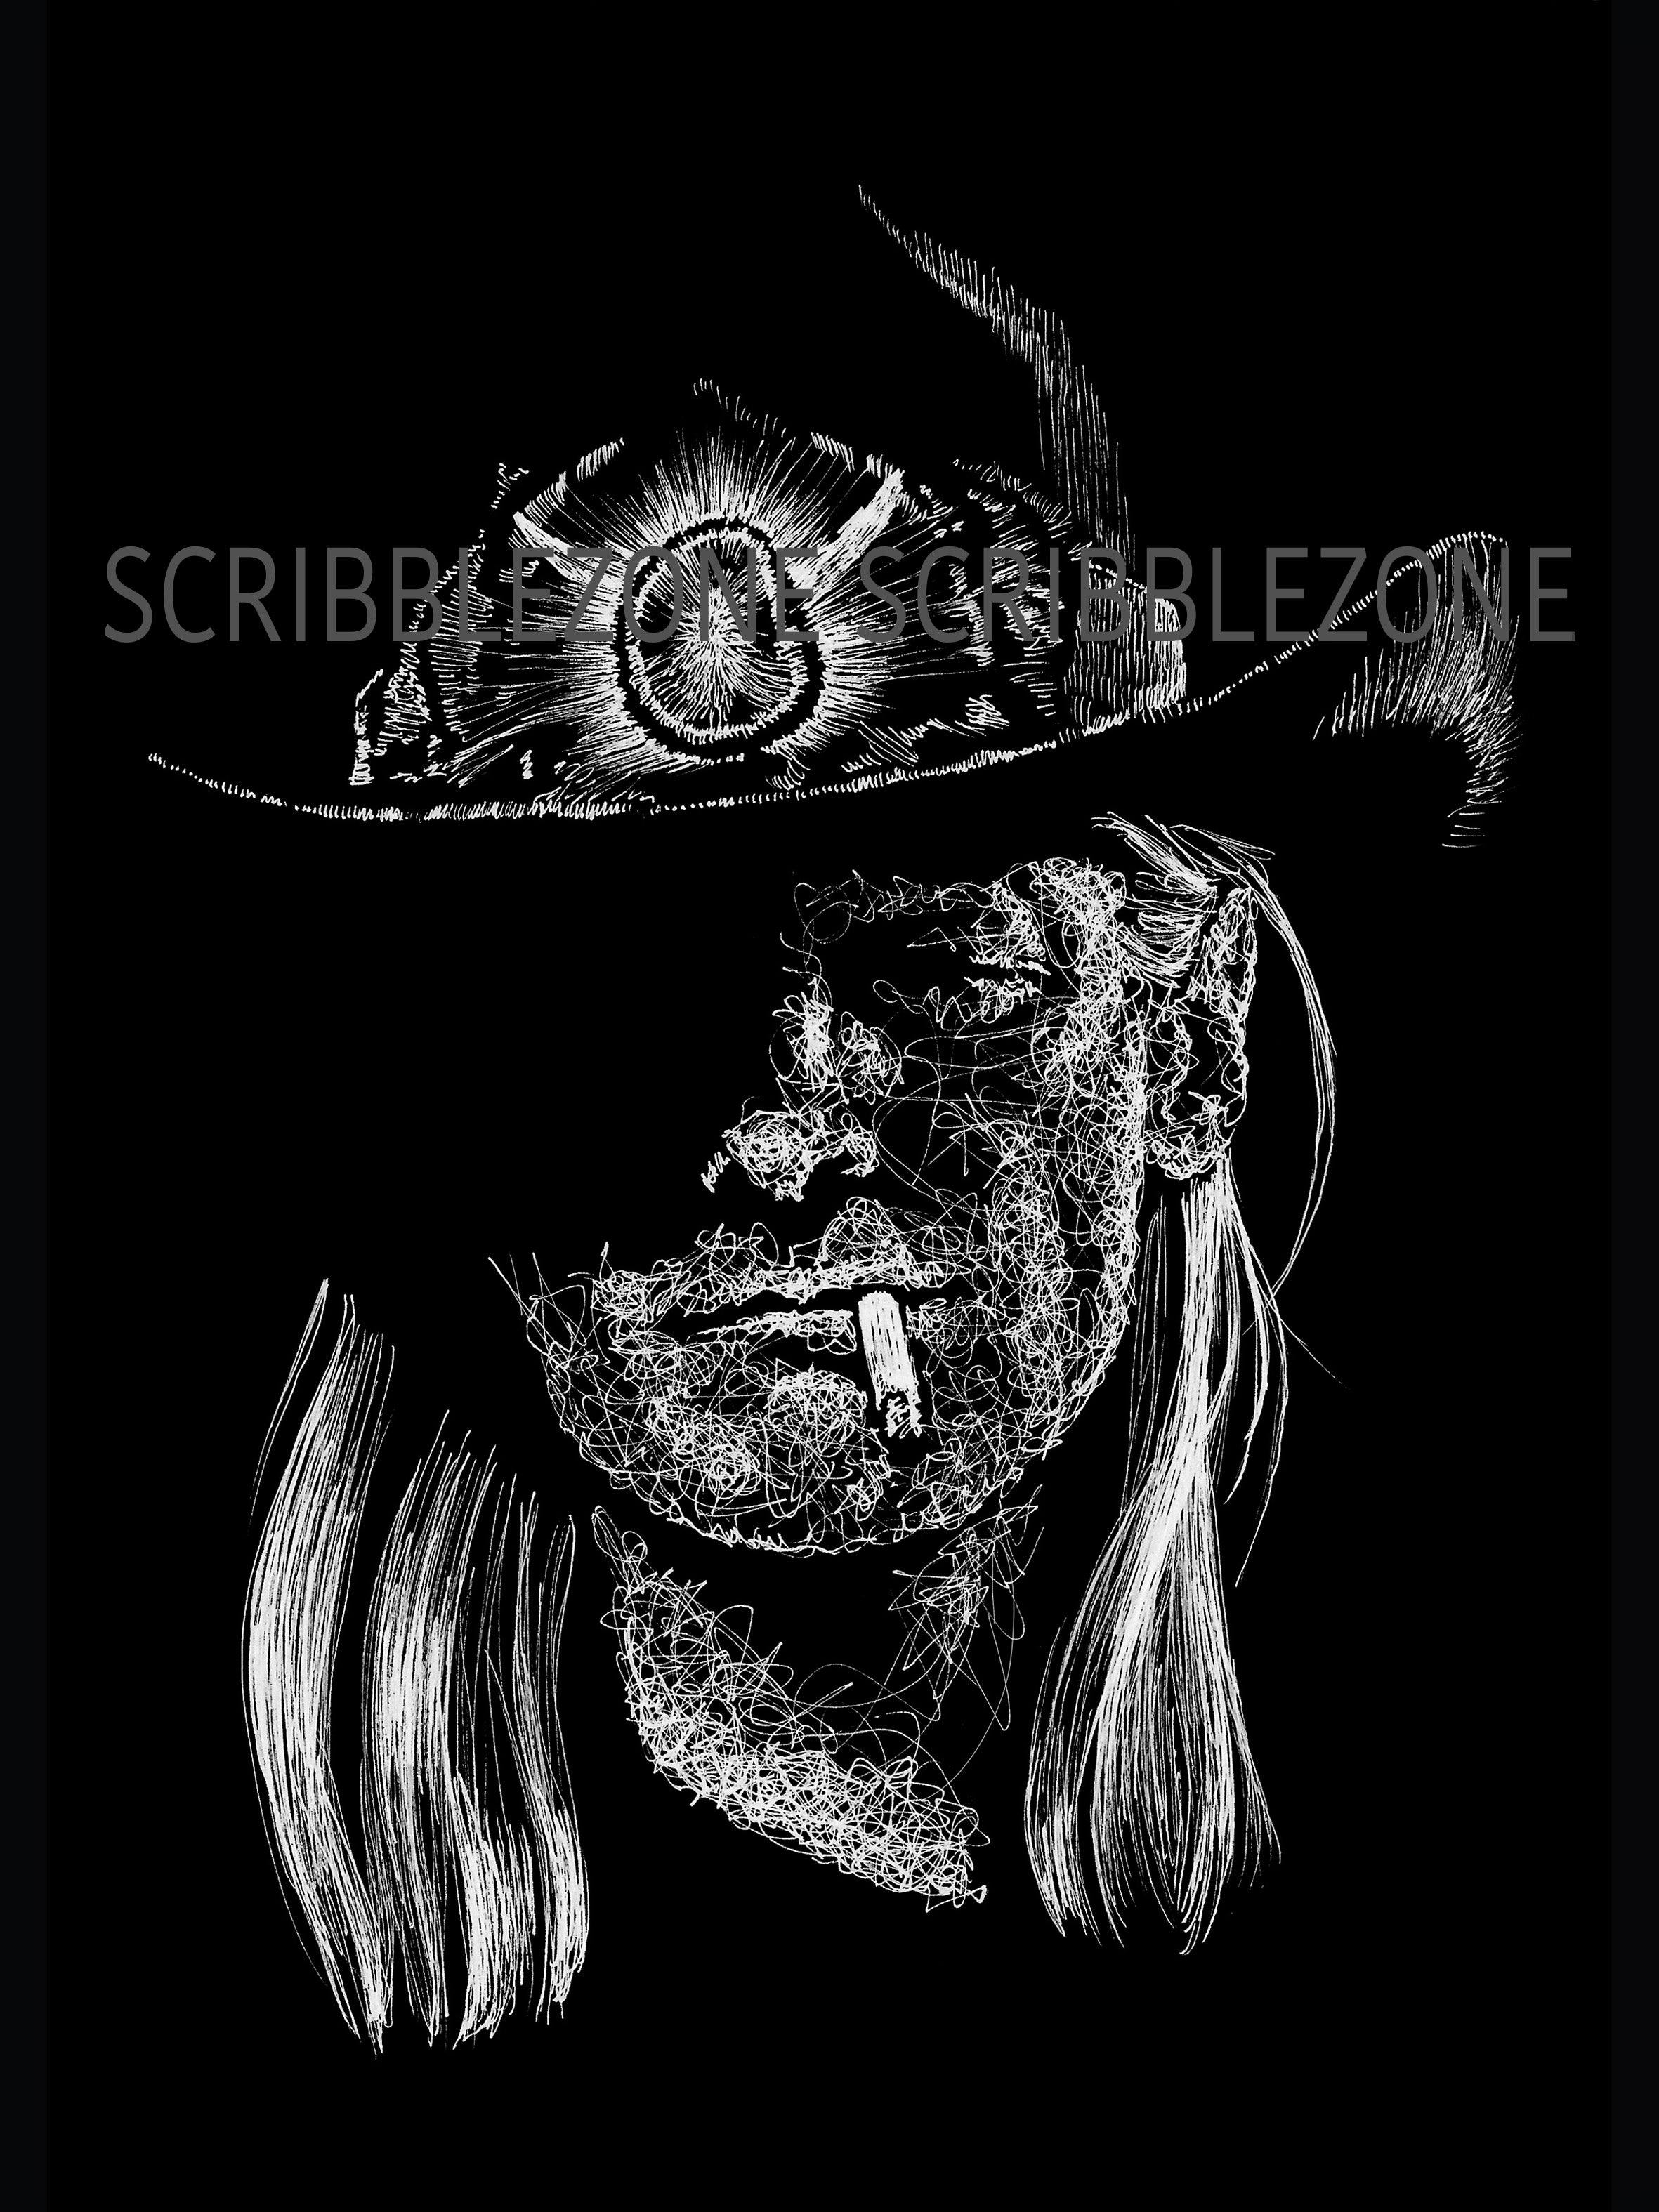 Reverse Scribble of Johnny Winter